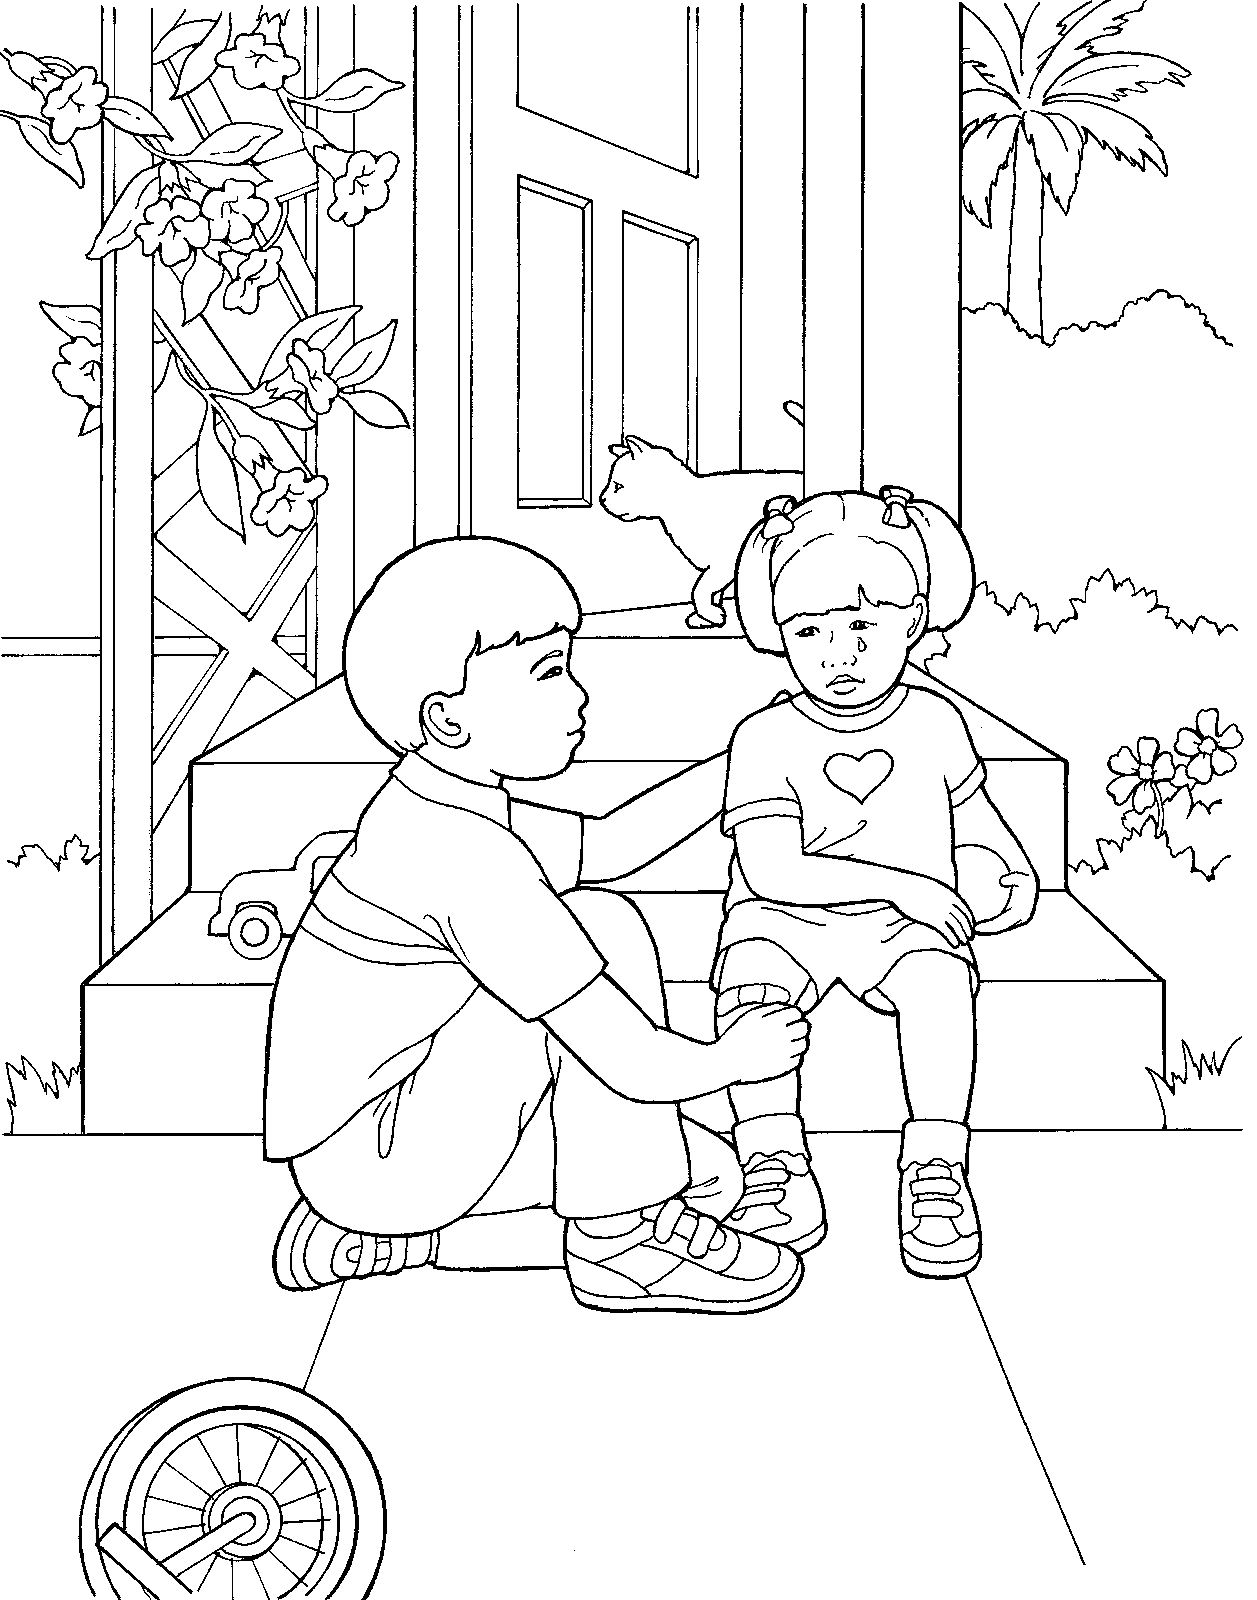 lds coloring pages illustration alchemy lds mobile apps coloring pages pages lds coloring